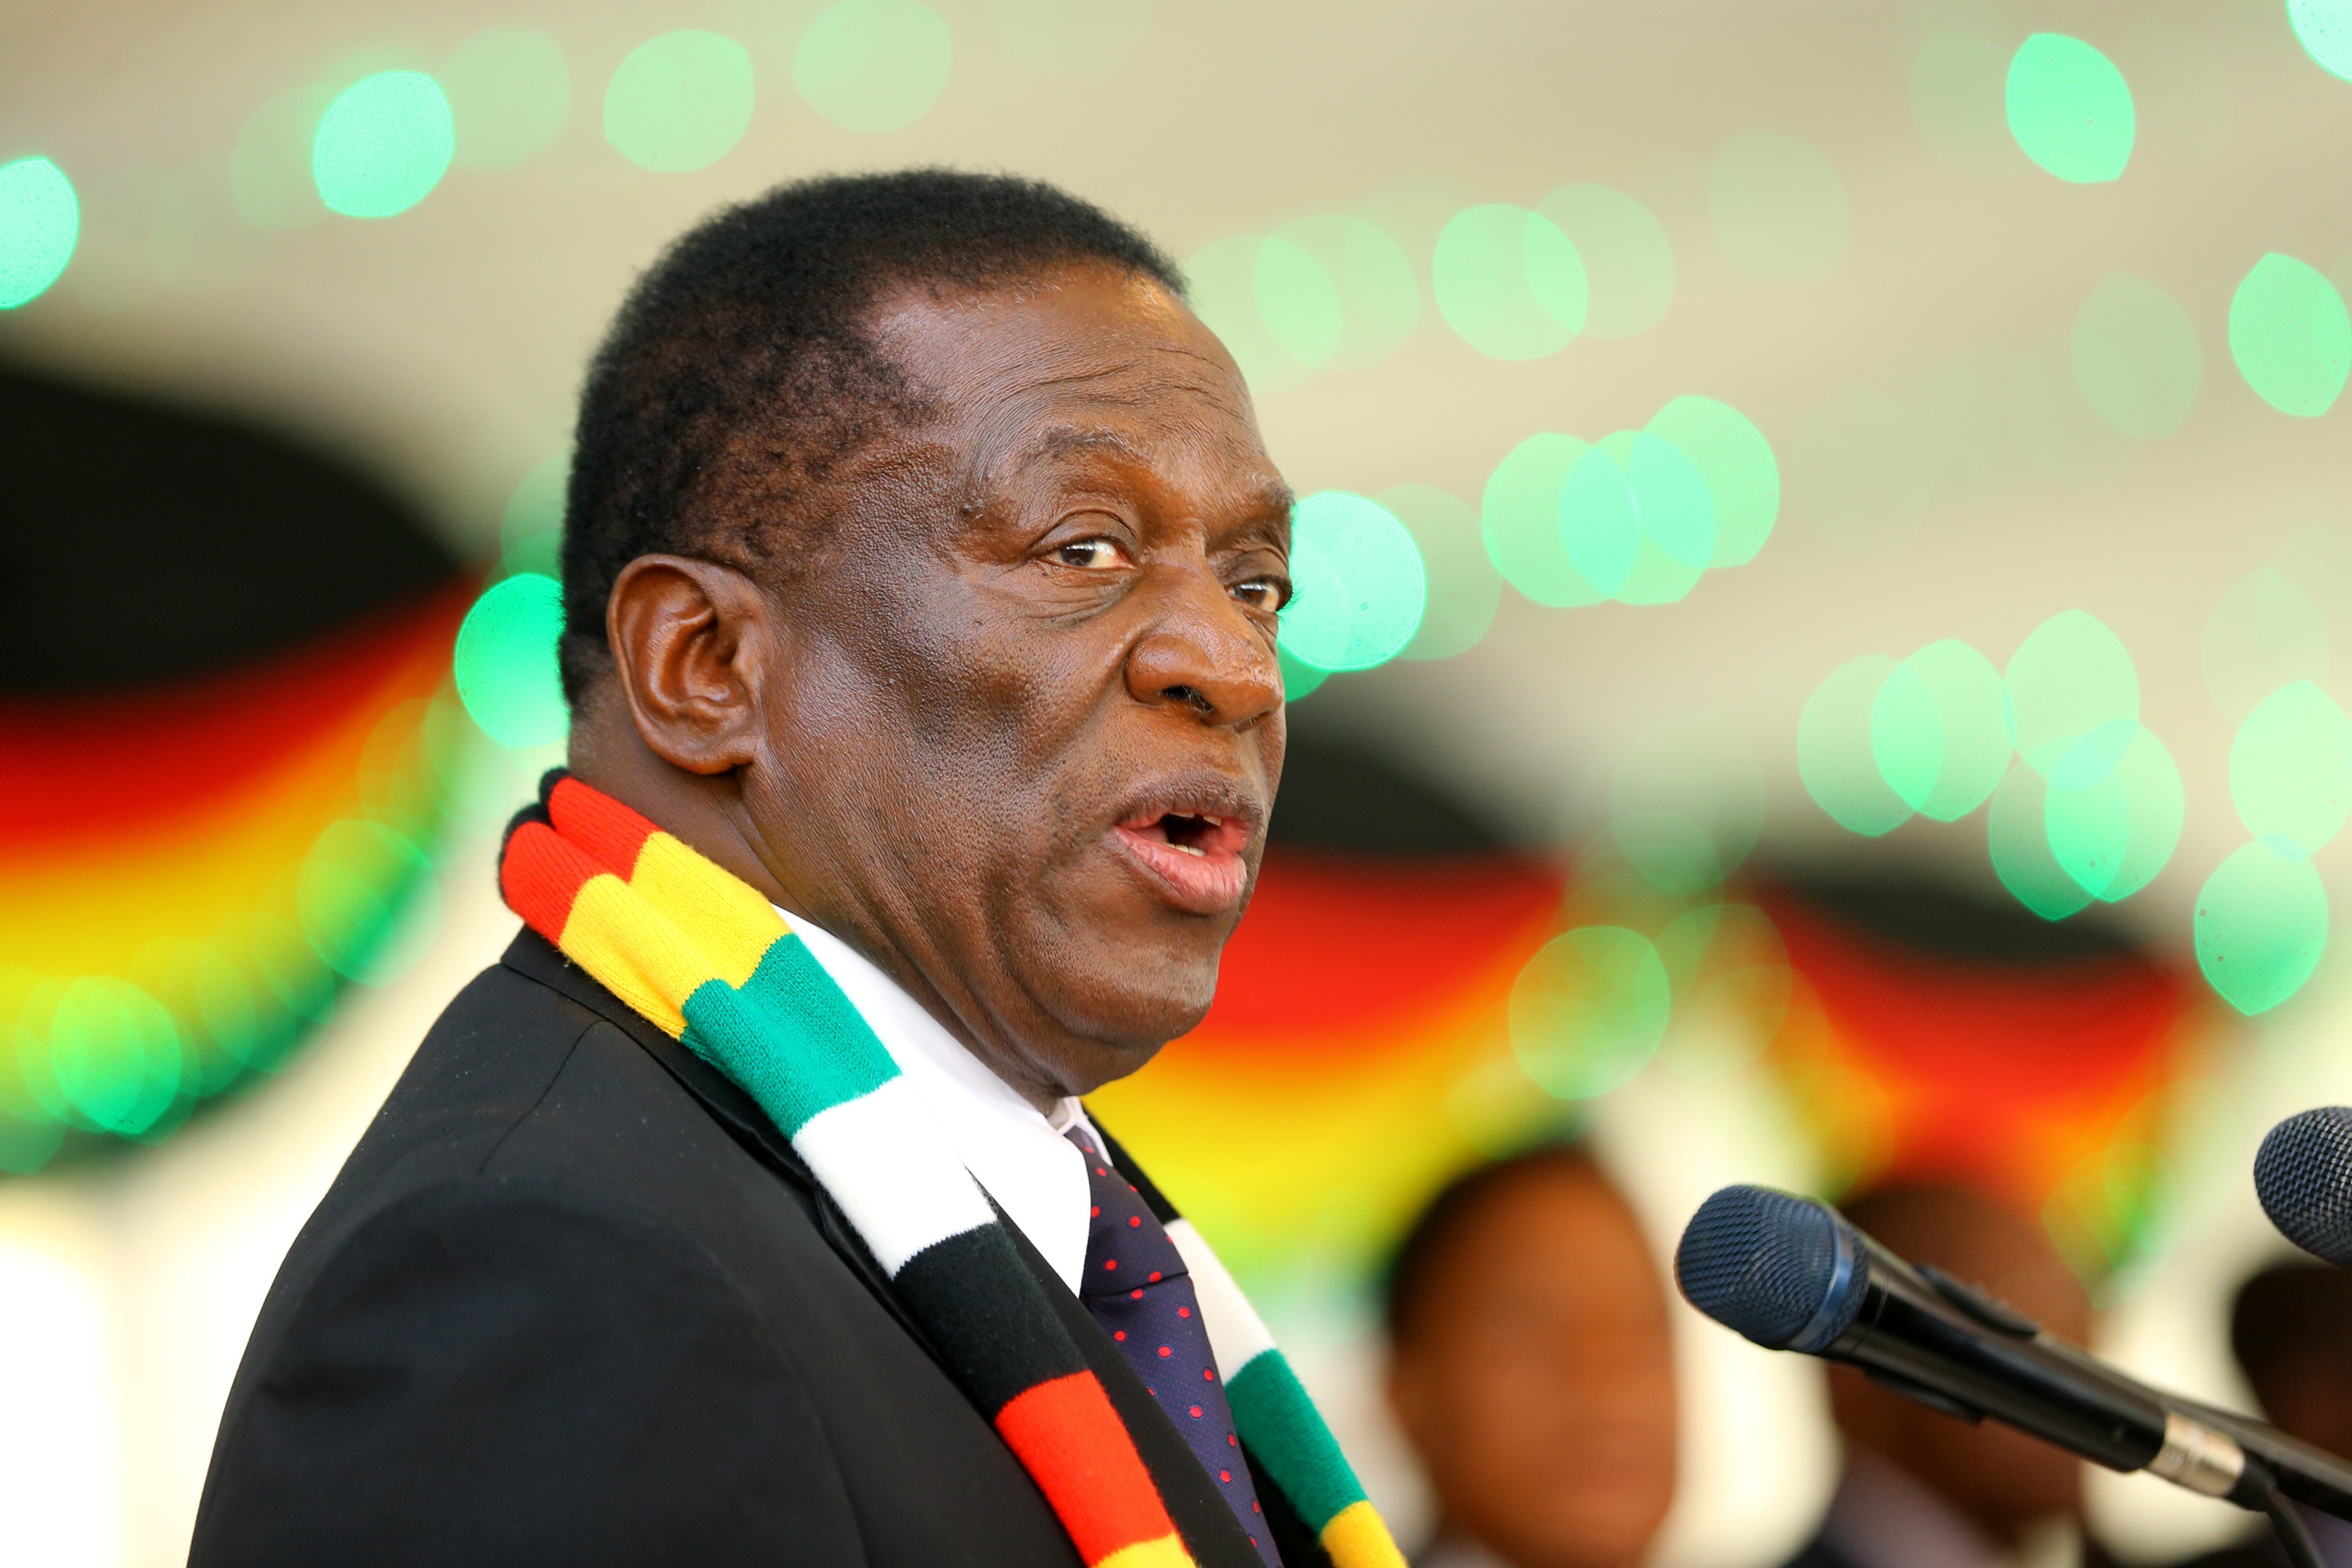 New Zimbabwean President Emmerson Mnangagwa Delivers A Speech During The Swearing In Of The New Members Of His Cabinet At The State House In Harare